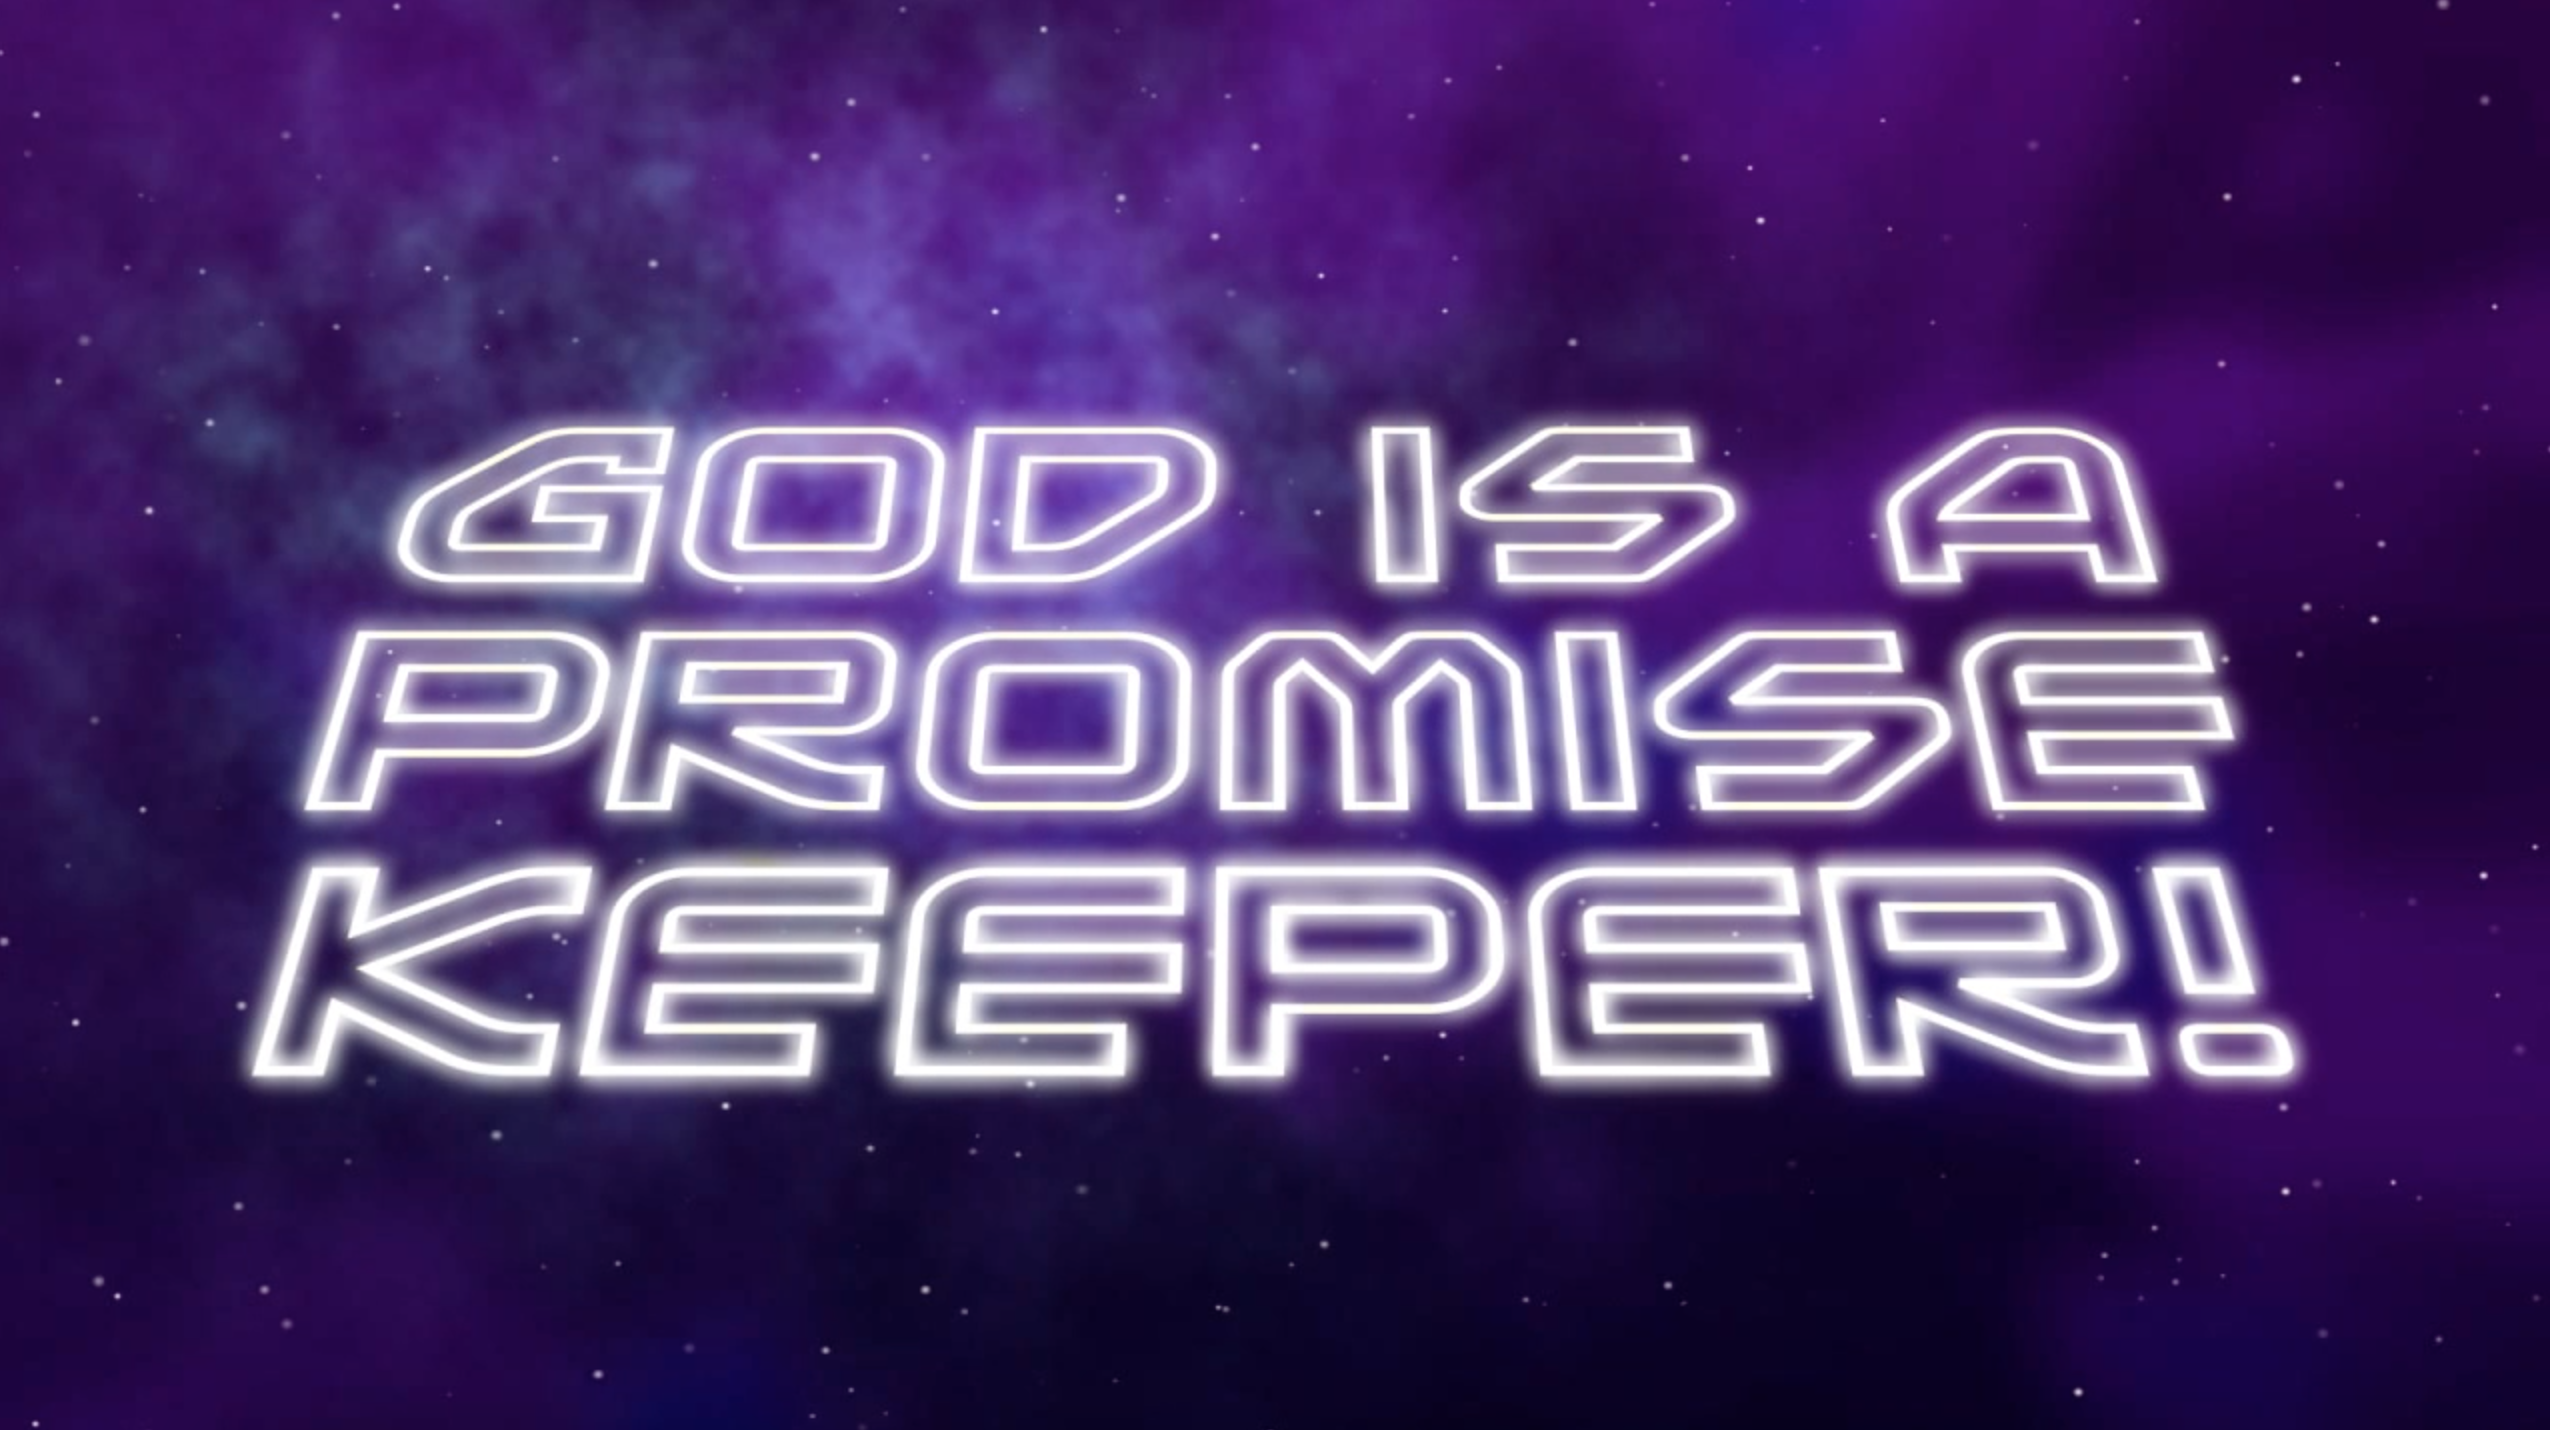 Nov. 11 | 11:00am | God is a Promise Keeper!